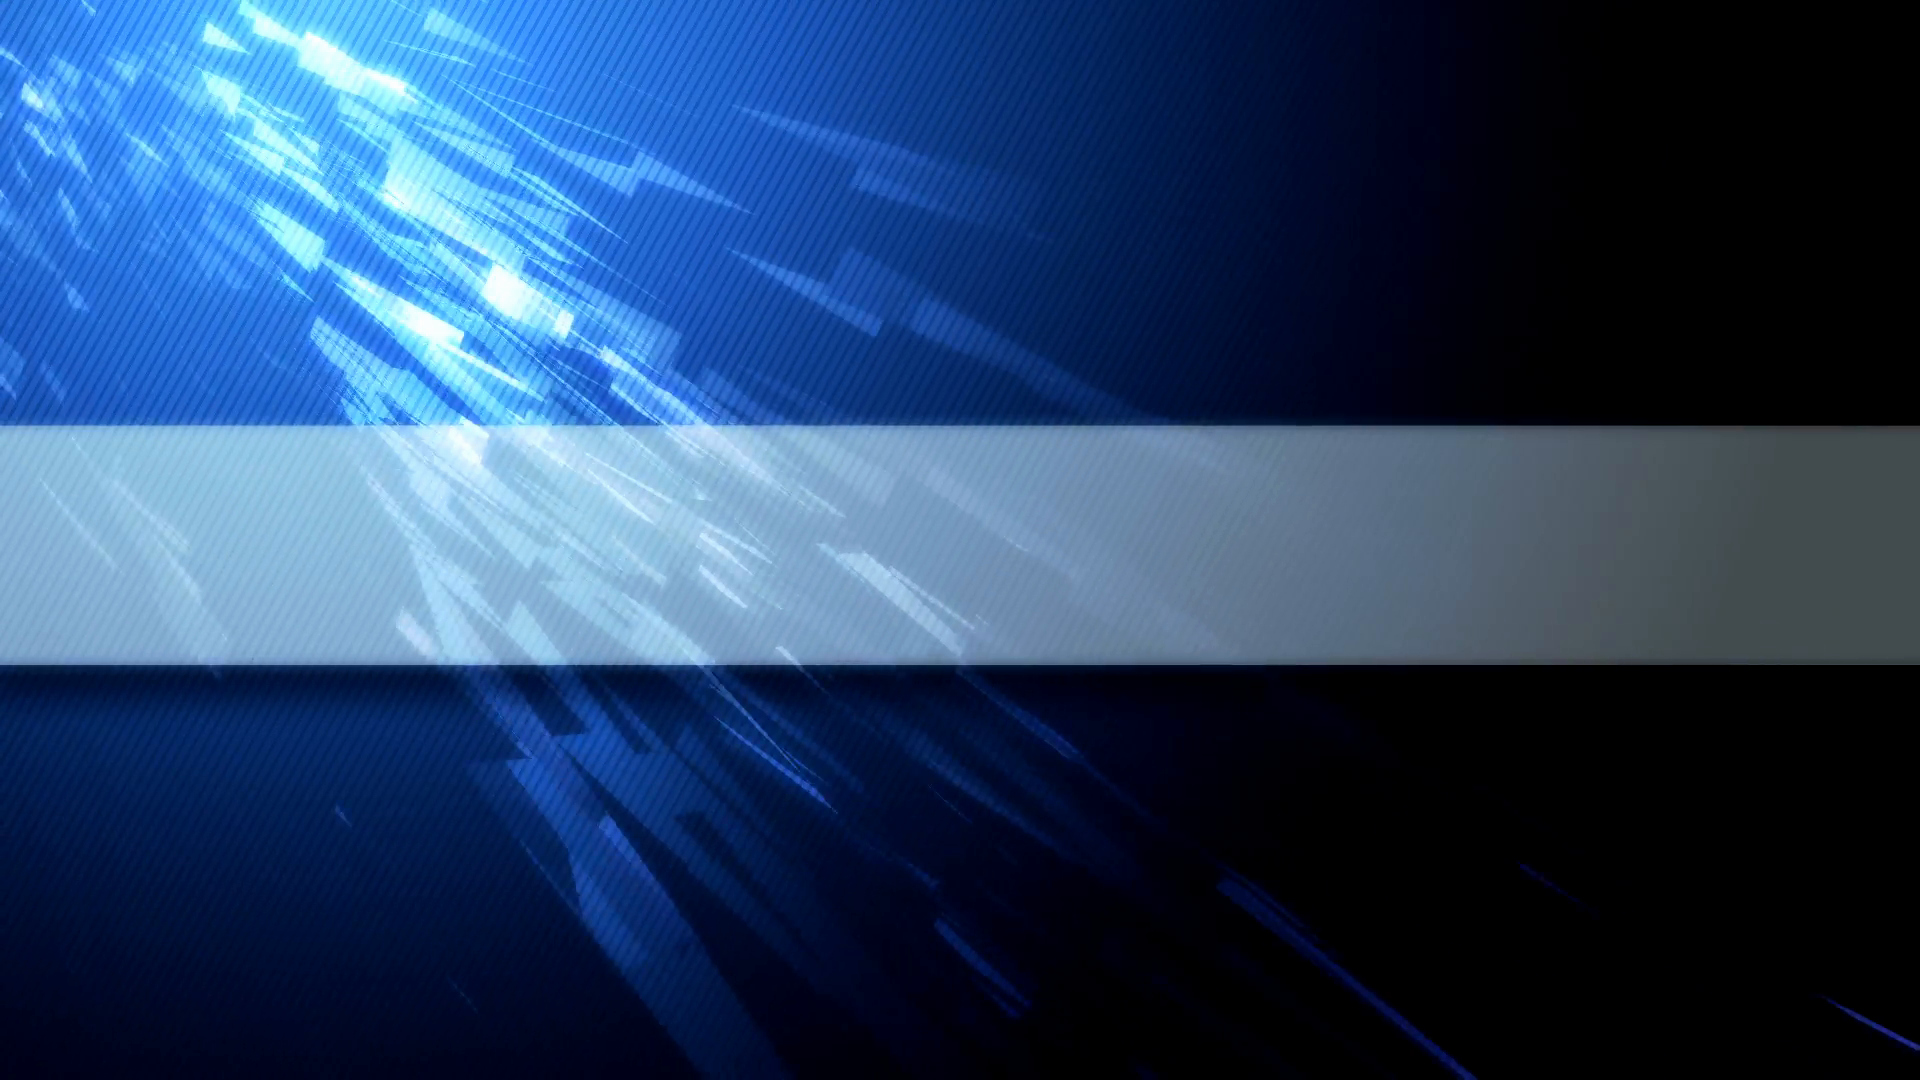 Banner Template No Text Fresh Blue Abstract Video Background with Copy Space for Your